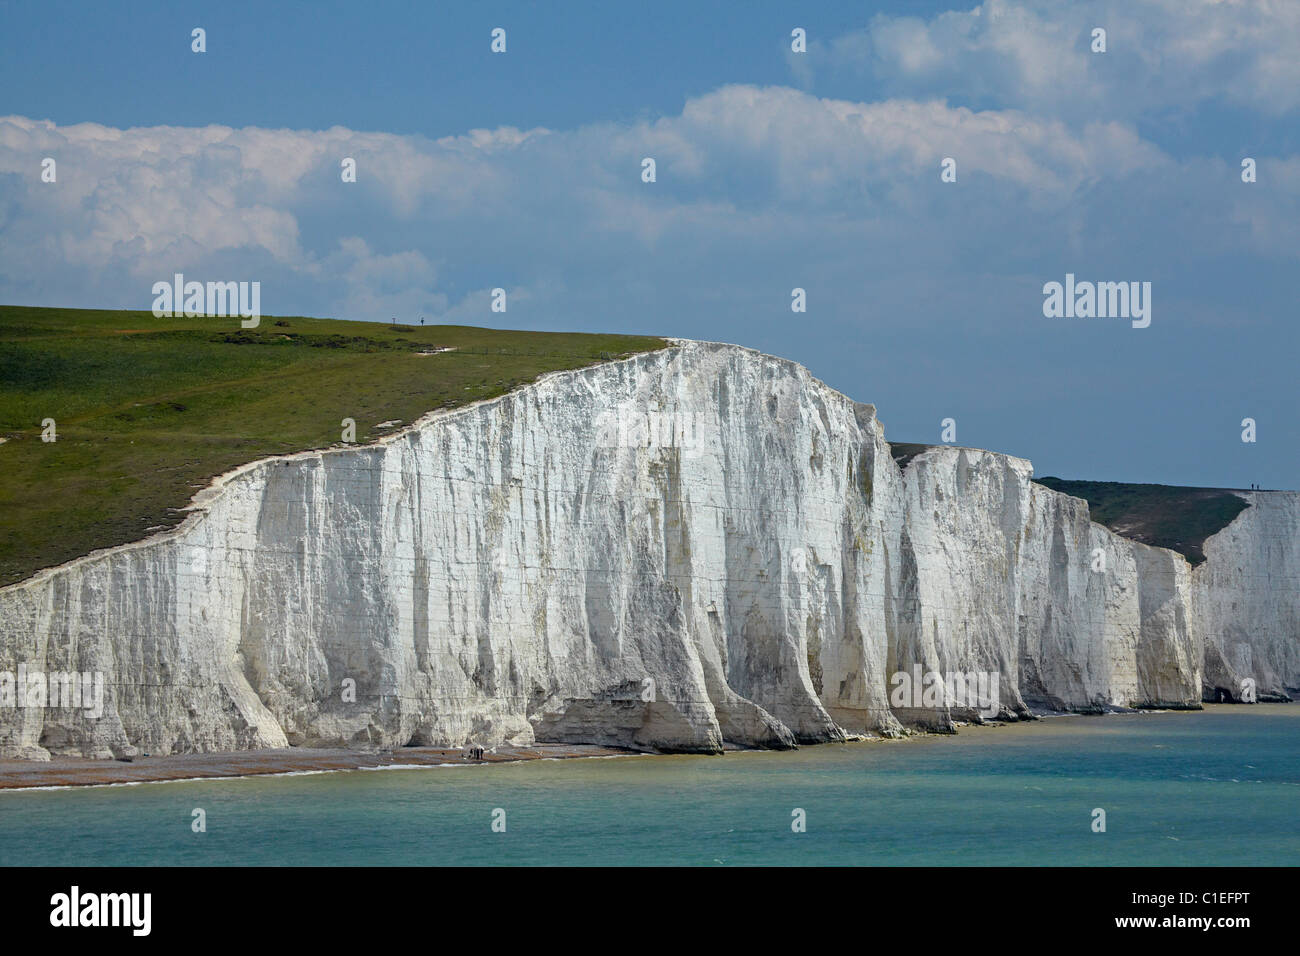 Seven Sisters Chalk Cliffs, seen from Cuckmere Haven, near Seaford, East Sussex, England, United Kingdom - Stock Image